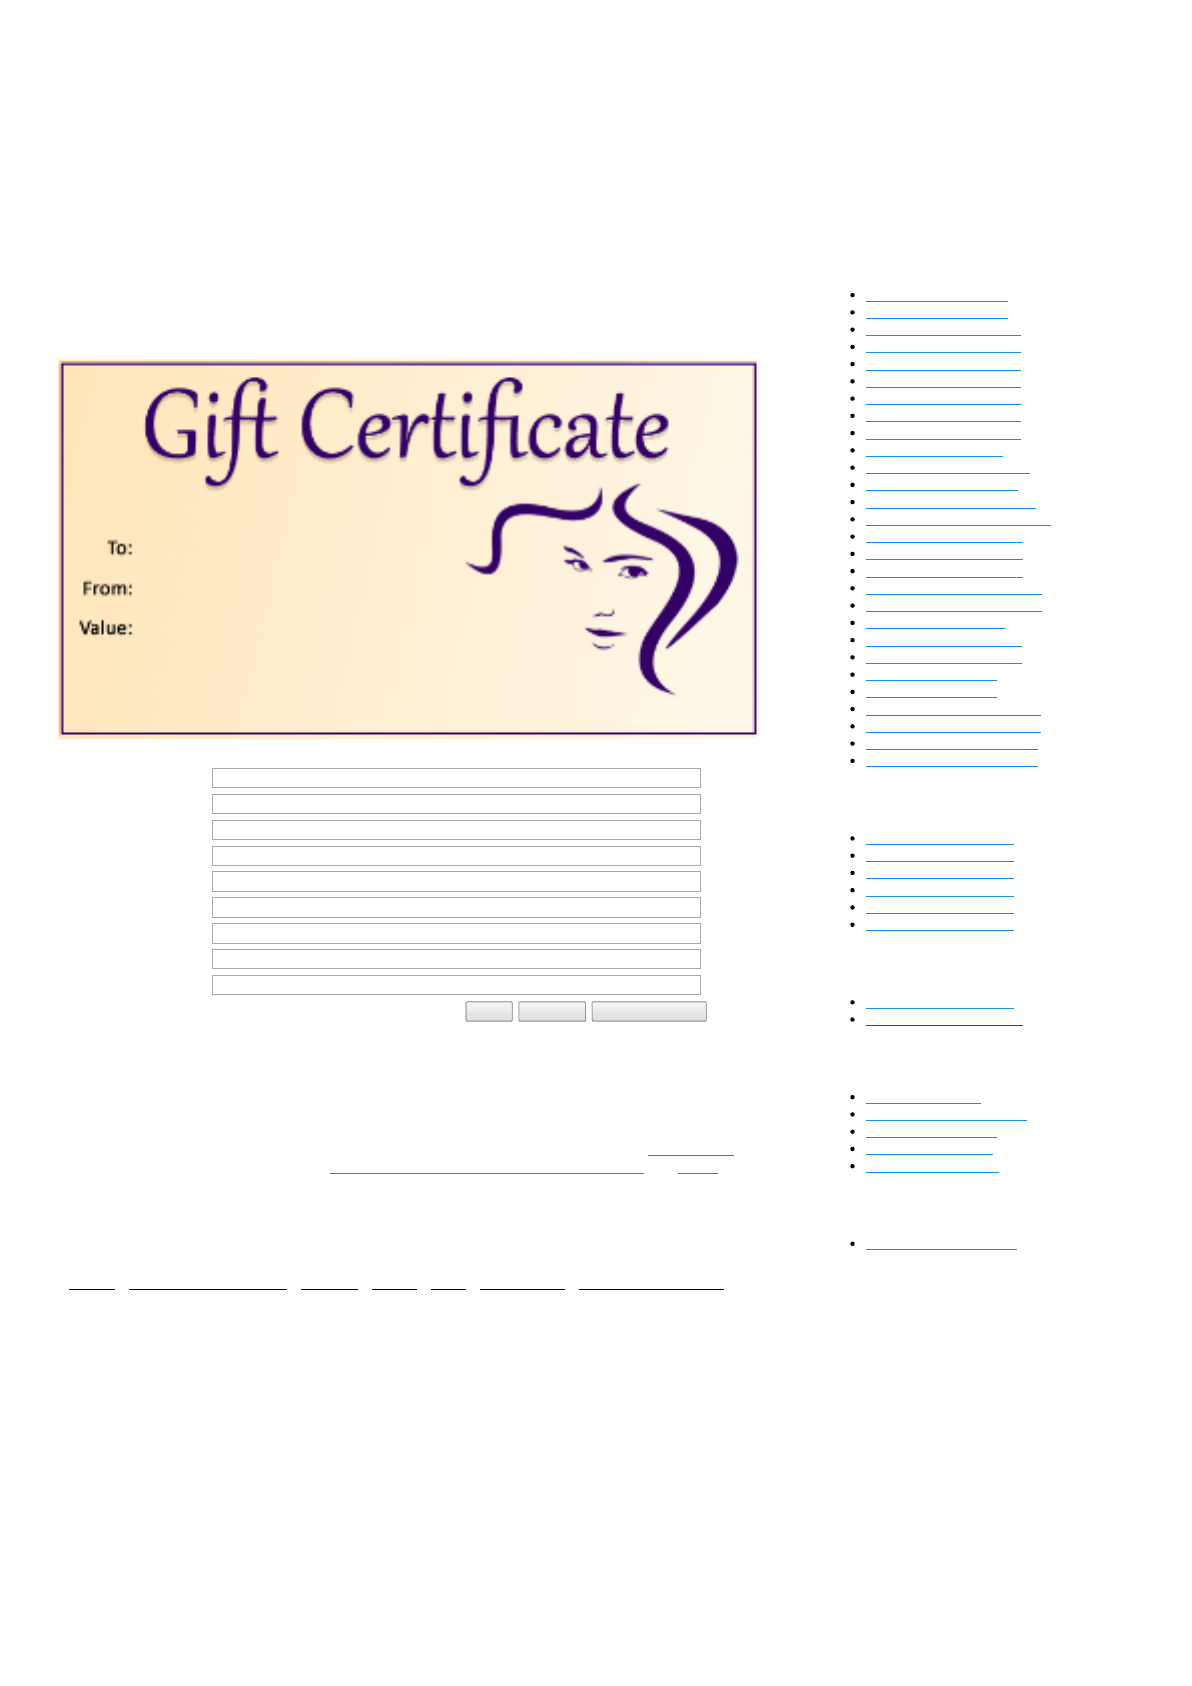 download hair salon gift certificate template for free